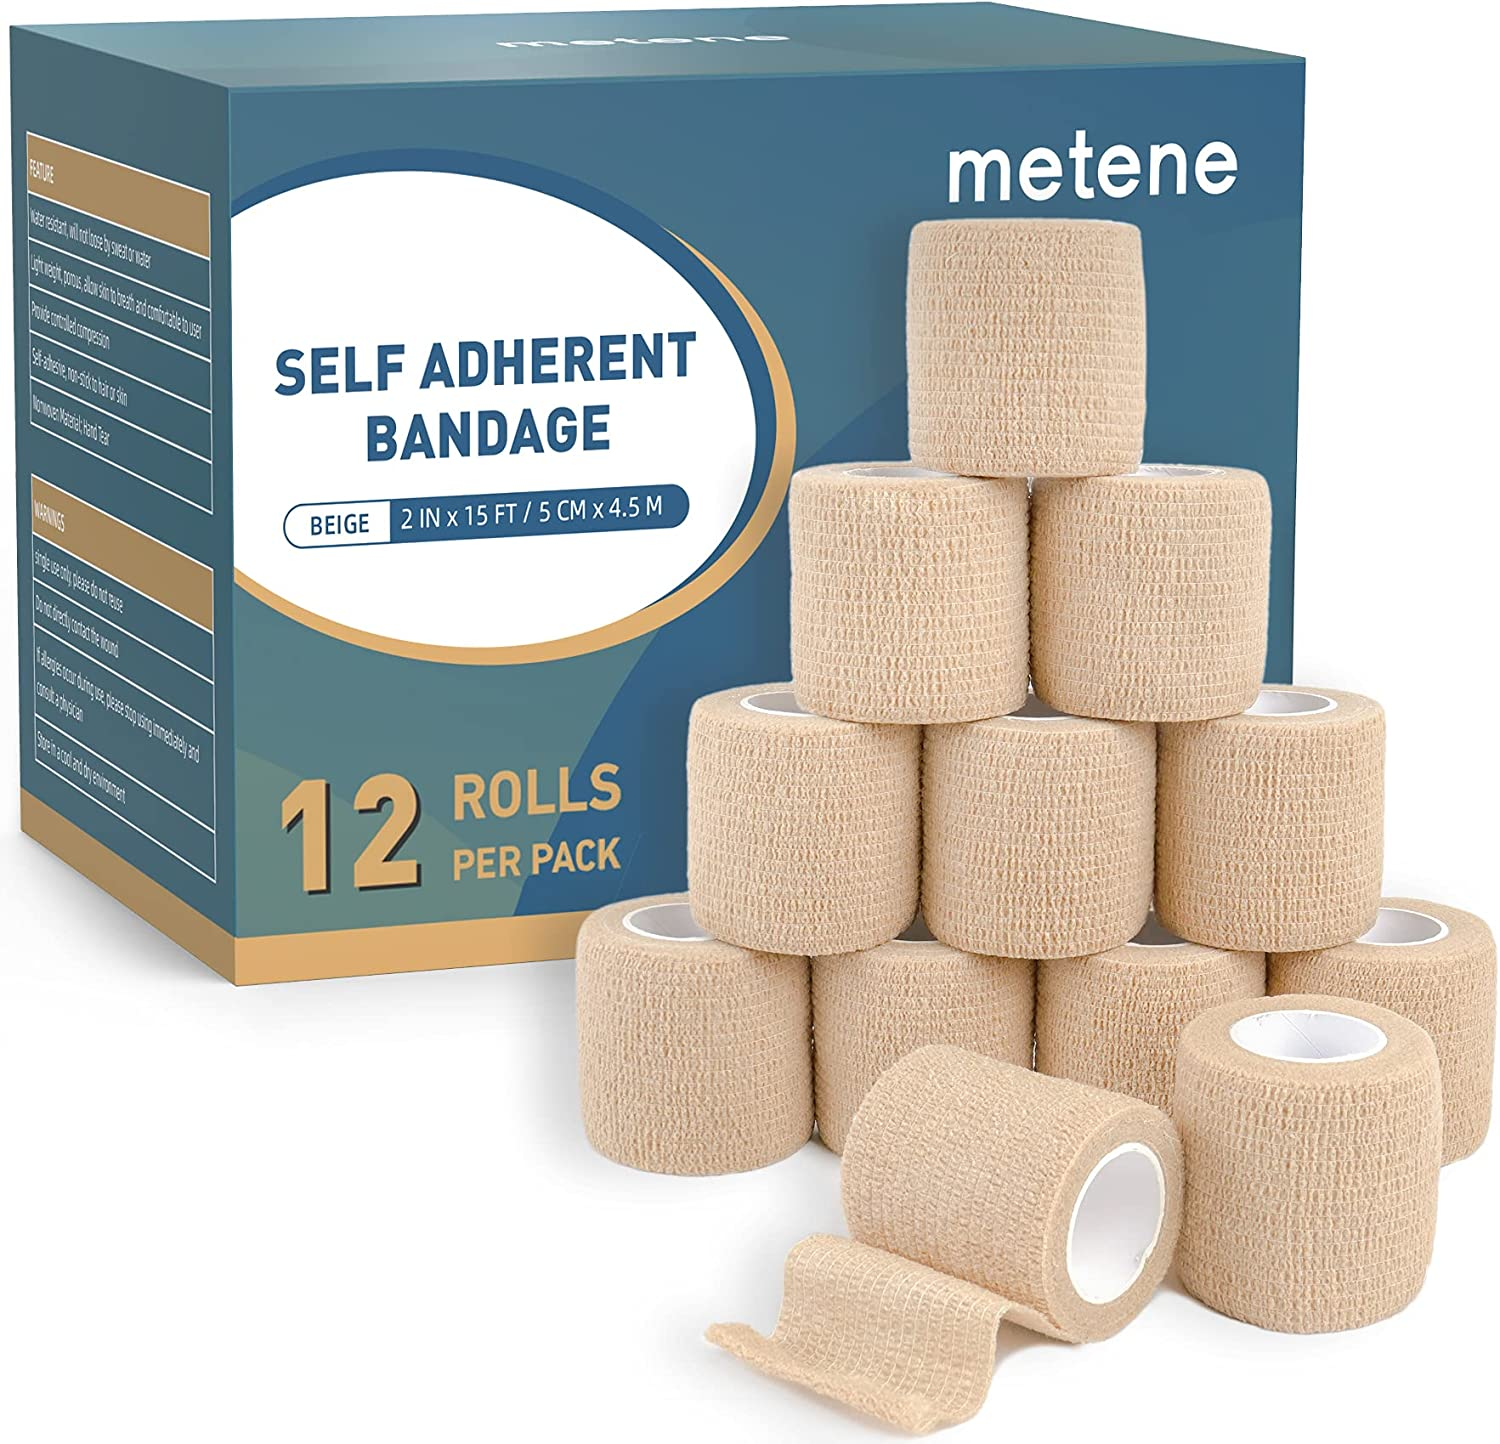 Metene Self Adhesive Bandage Wrap 12 Pack, Athletic Tape 2 Inches X 5 Yards, Sports Tape, Breathable, Waterproof, Elastic Bandage for Sports, Wrist and Ankle Wrap Tape, Non-Woven Bandage : Health & Household